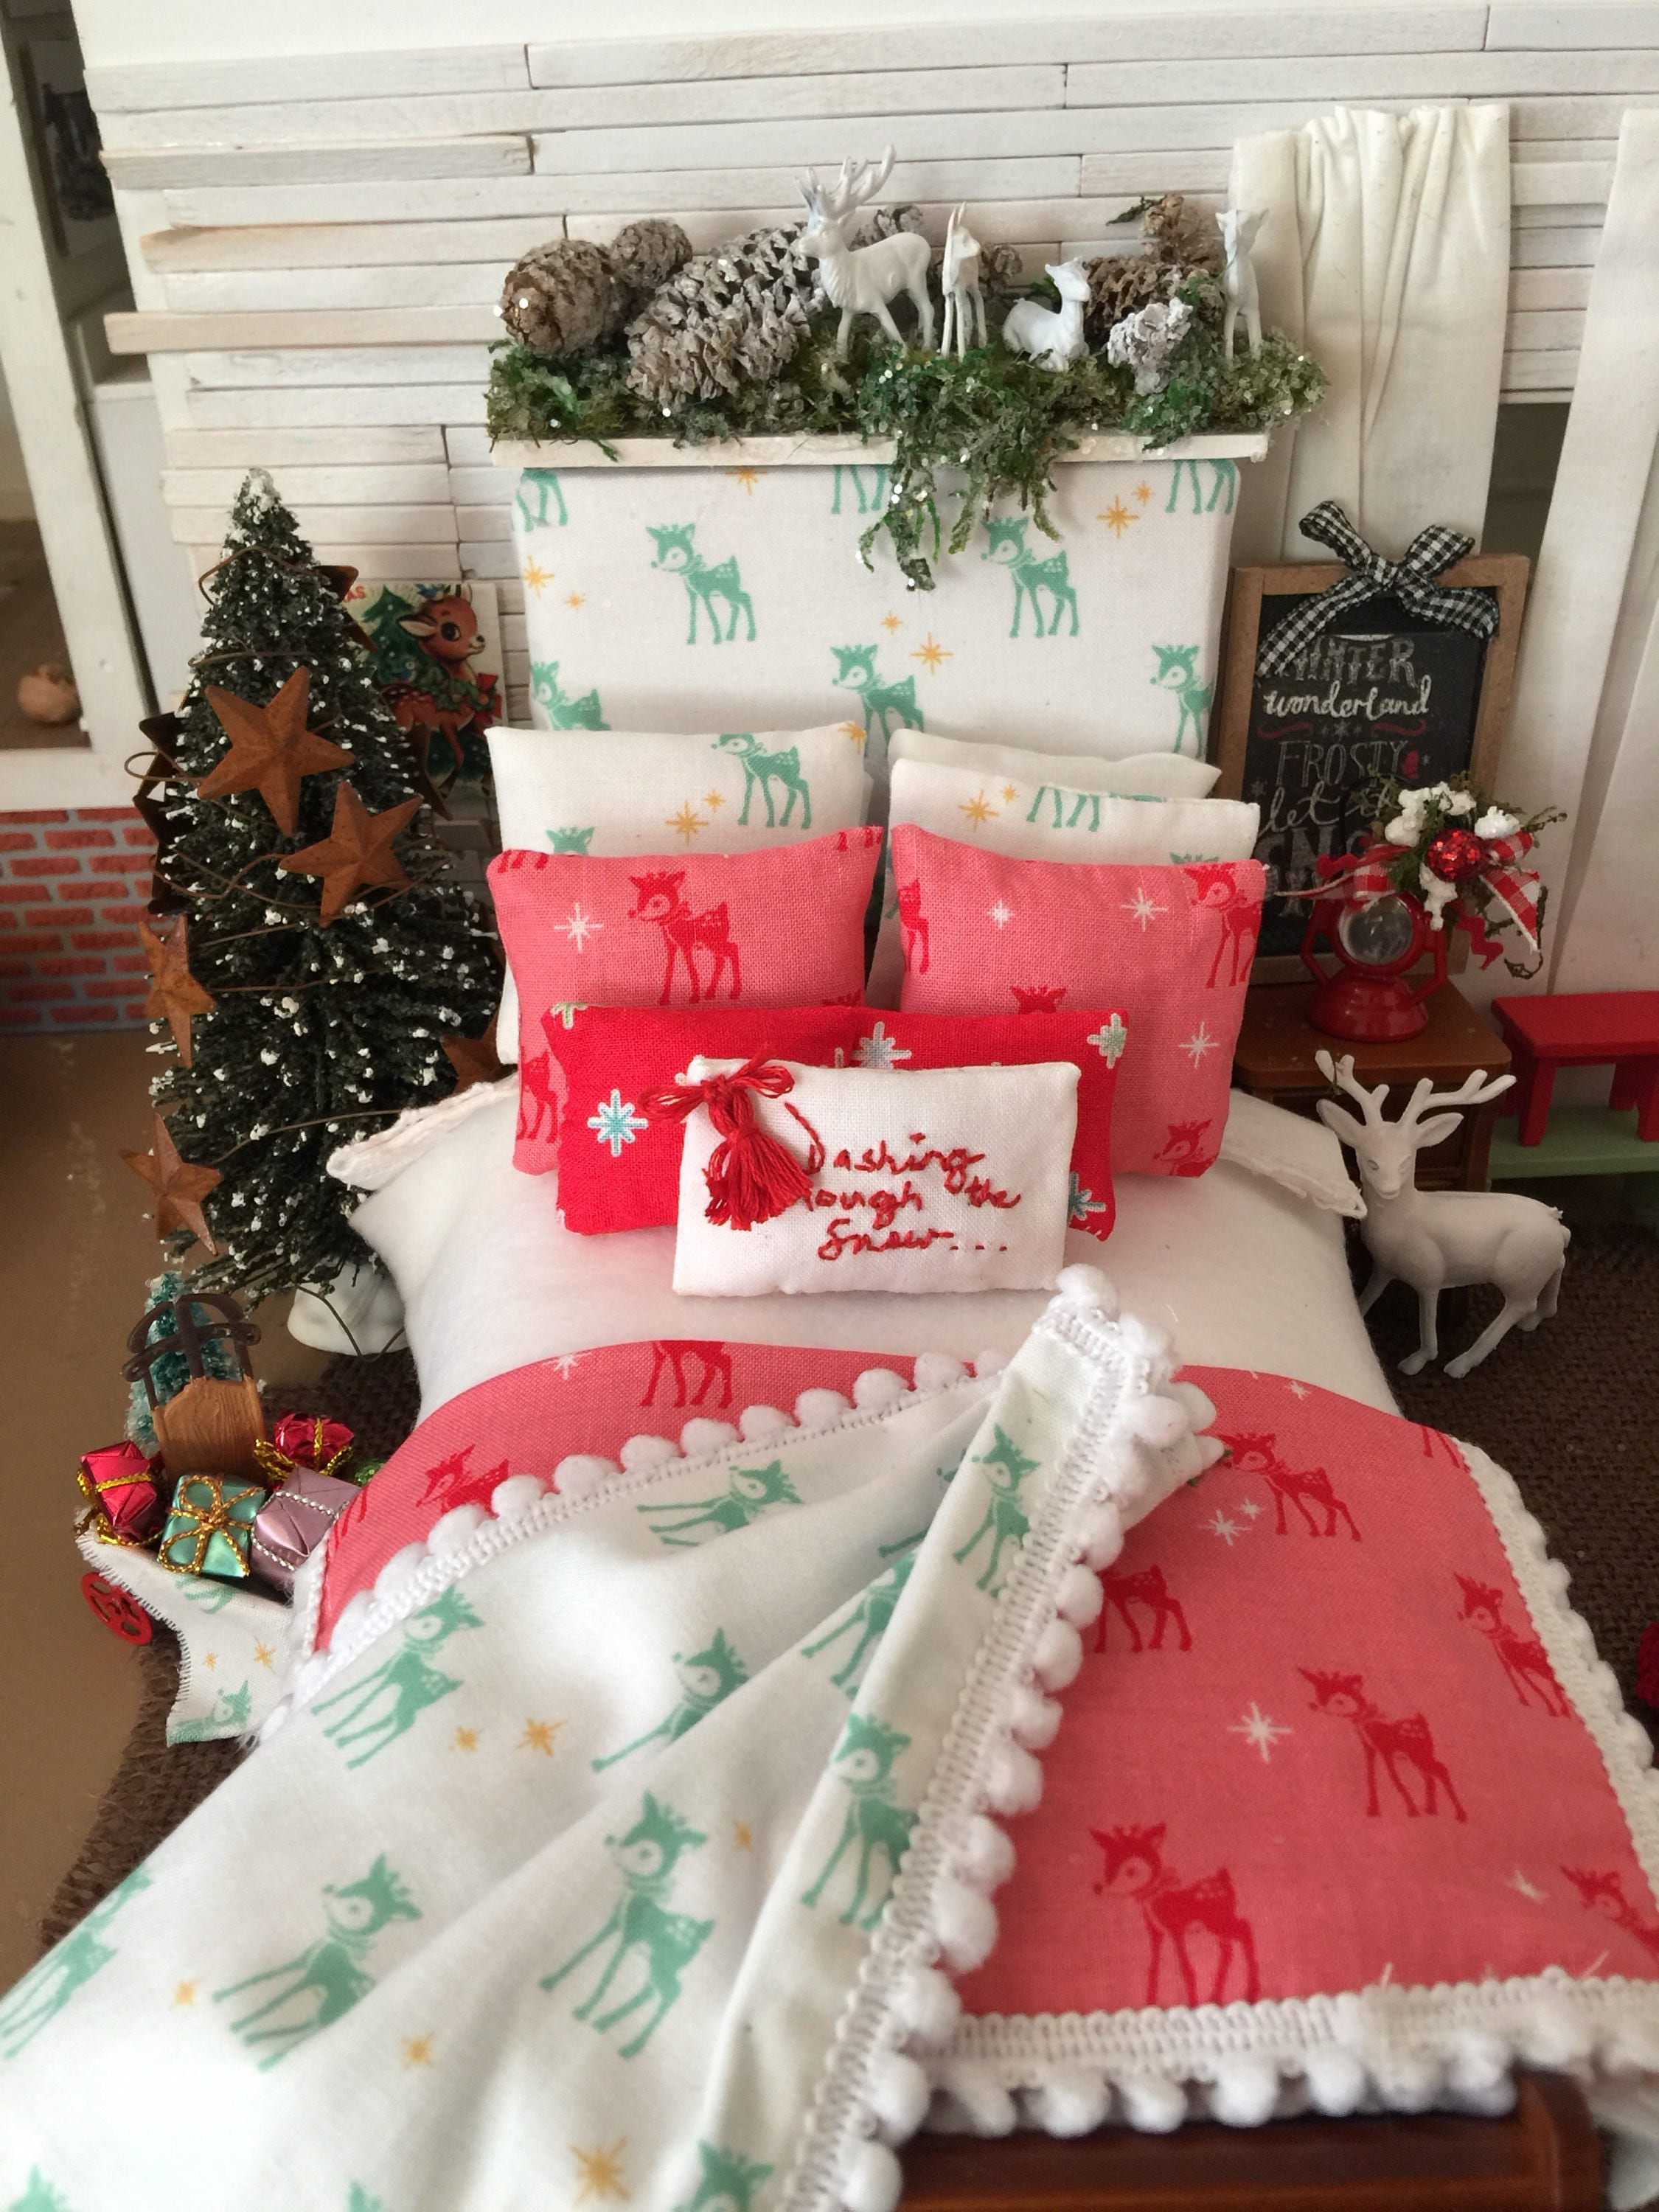 miniature dollhouse christmas reindeer bedding headboard and wooden sleigh bed 112 scale one of a kind - Dollhouse Christmas Decorations